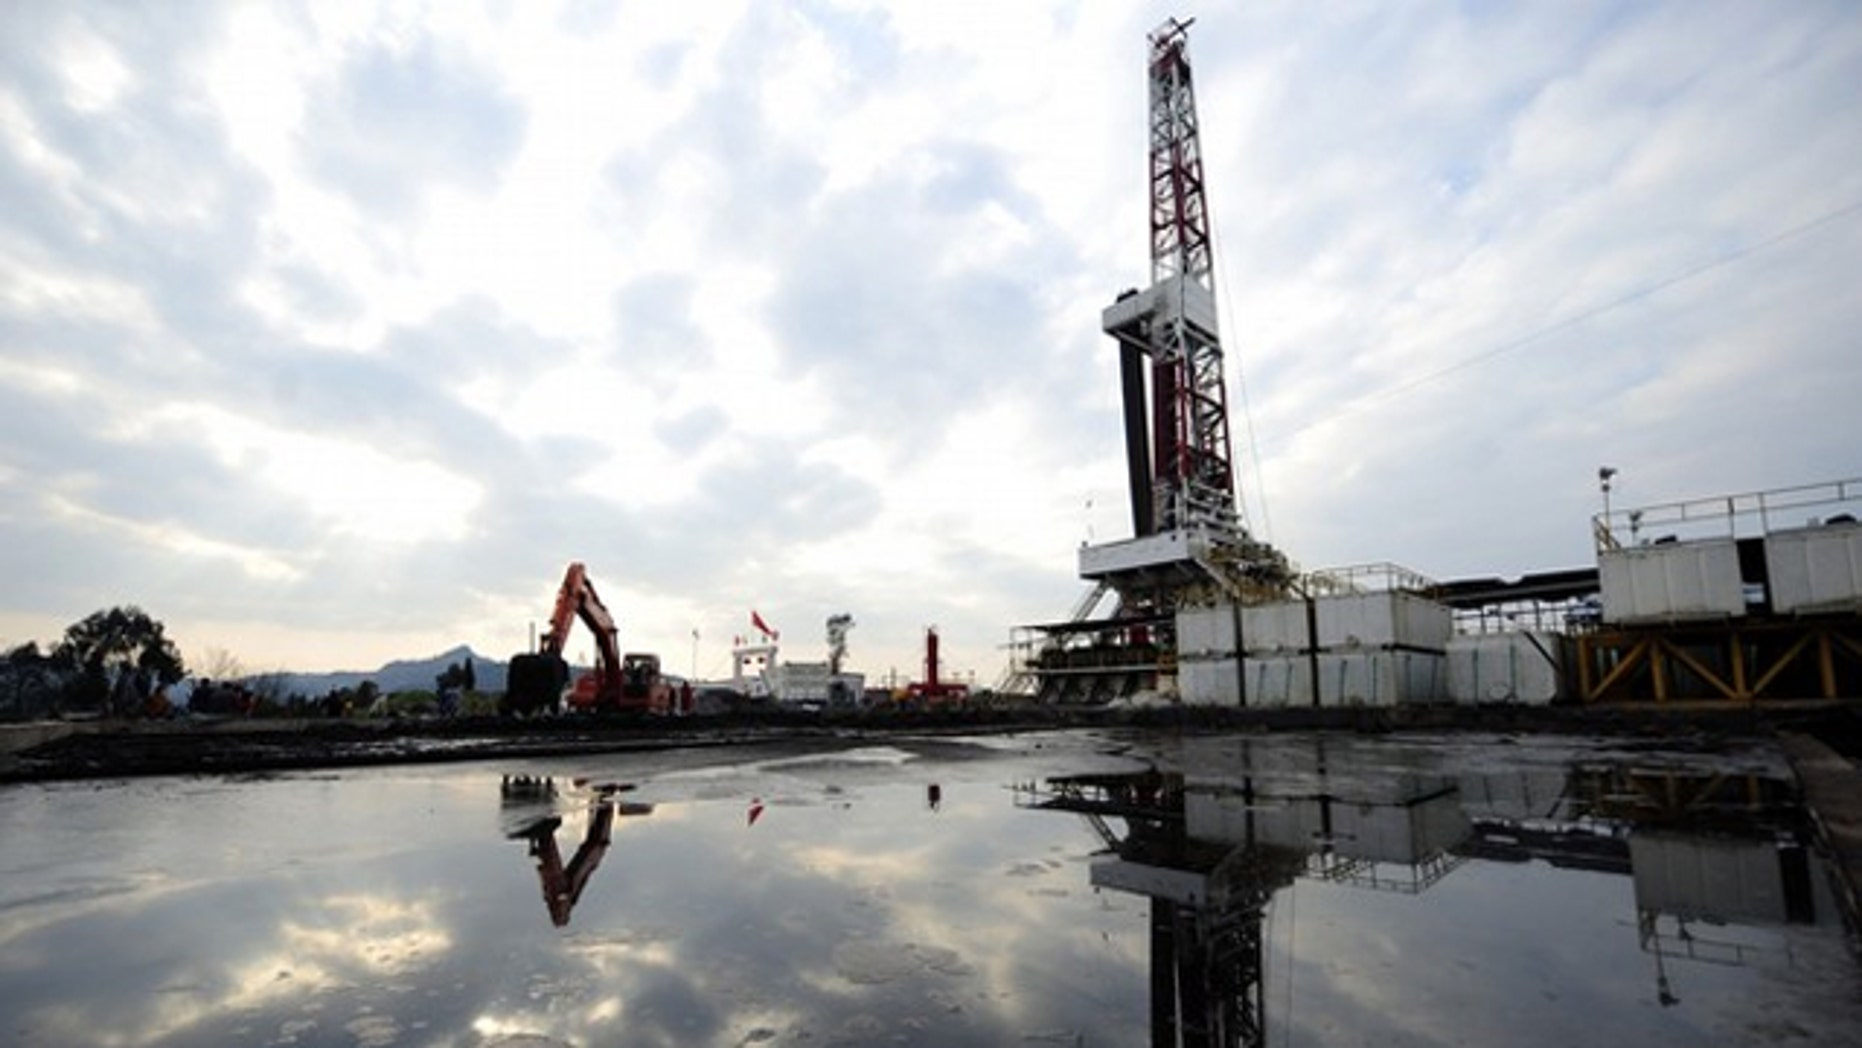 New research shows gas drilling can contaminate drinking water with methane.